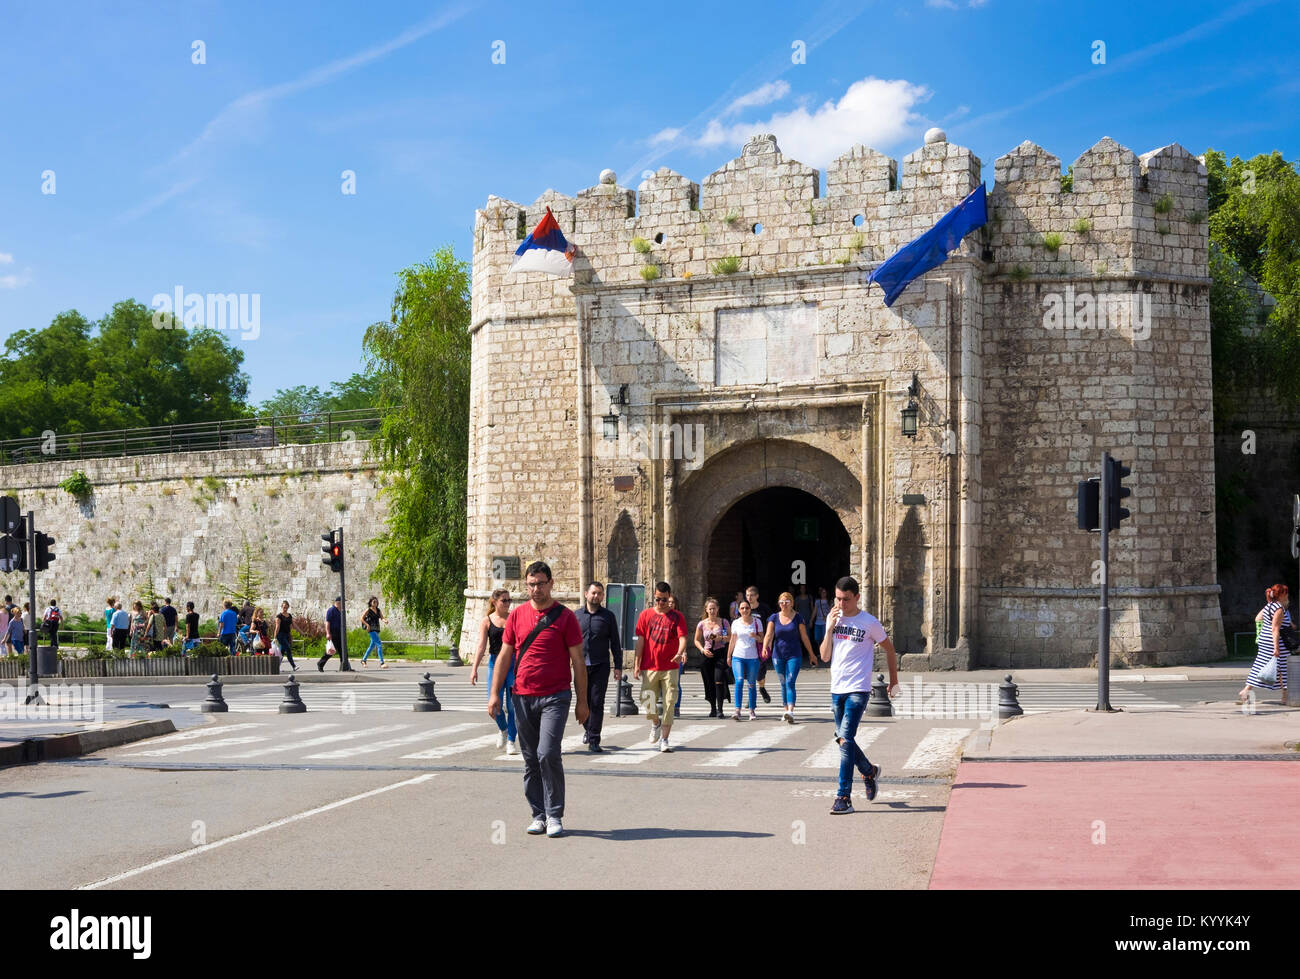 The Istanbul or Stambol Gate, the main entrance to the Nis Fortress in Nis, Serbia, Eastern Europe - Stock Image